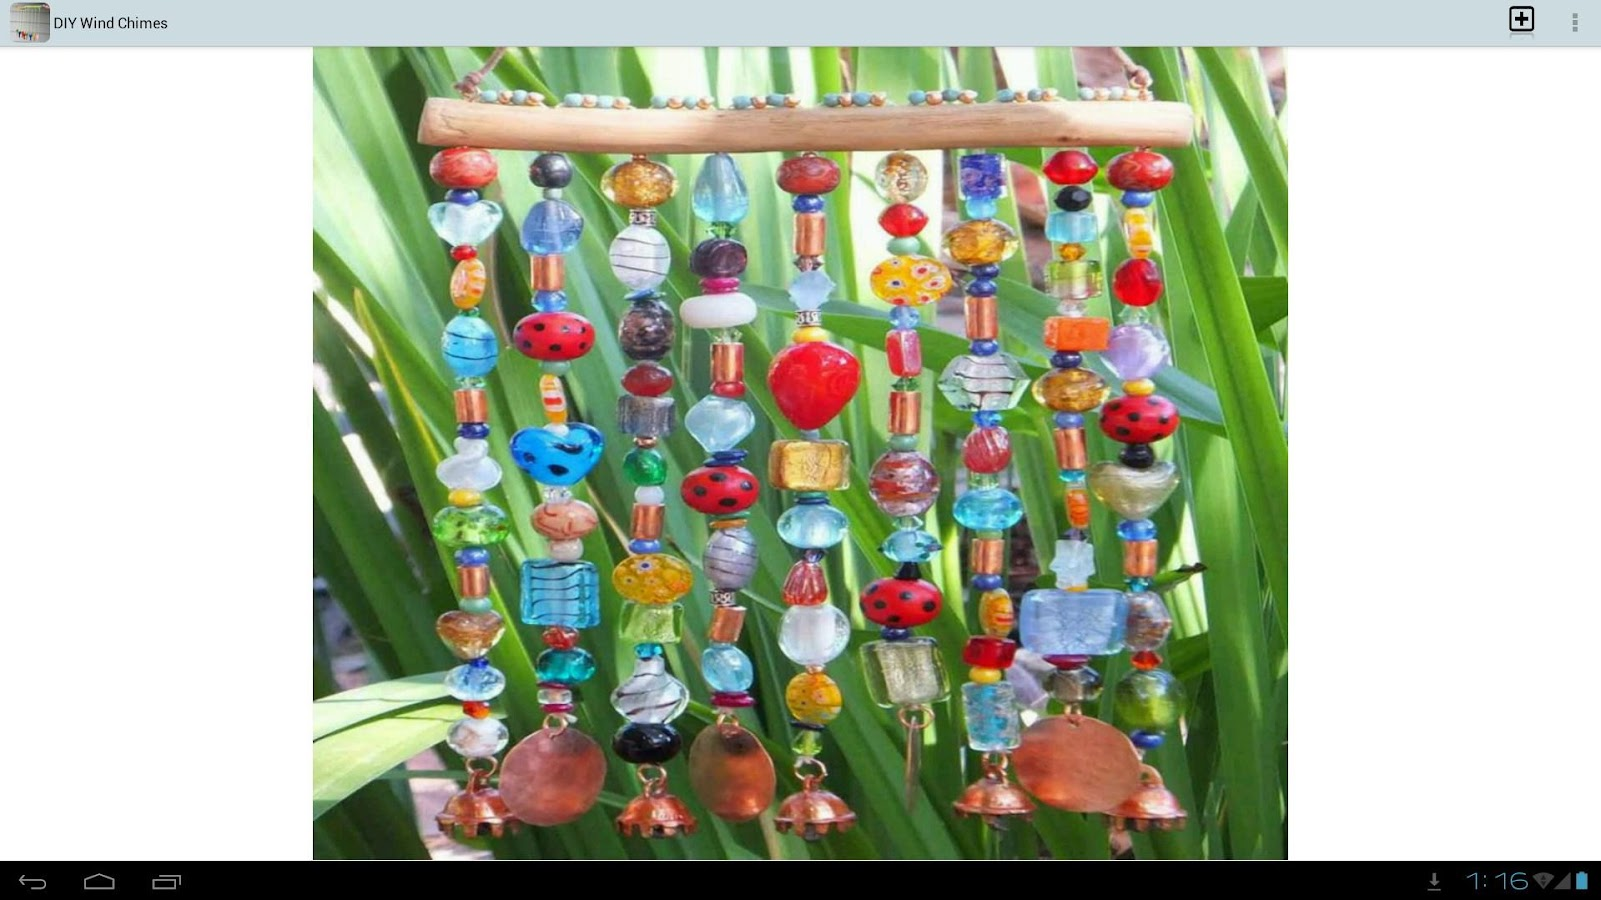 Diy Wind Chimes Diy Wind Chimes Android Apps On Google Play